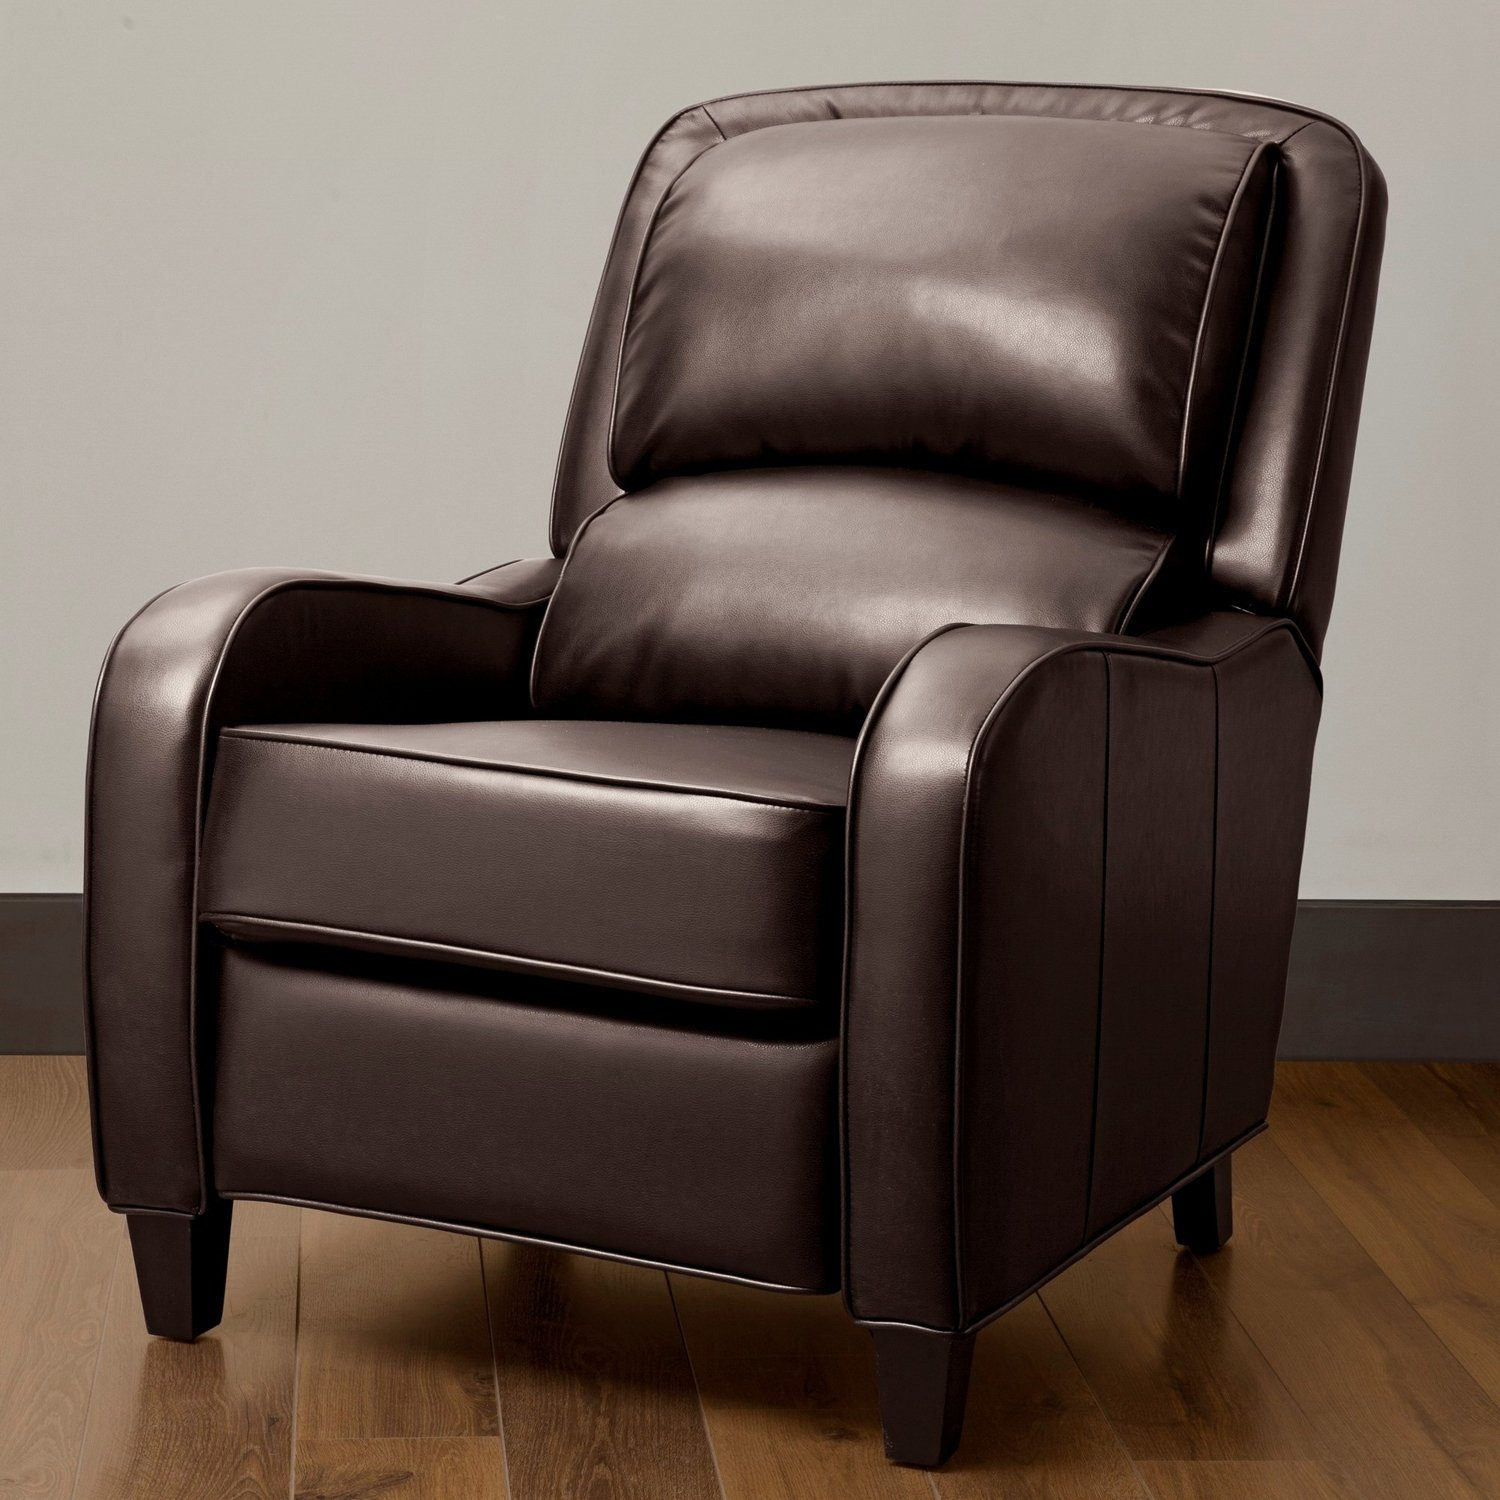 Cute Recliners For Small Spaces. Decoriest Home .